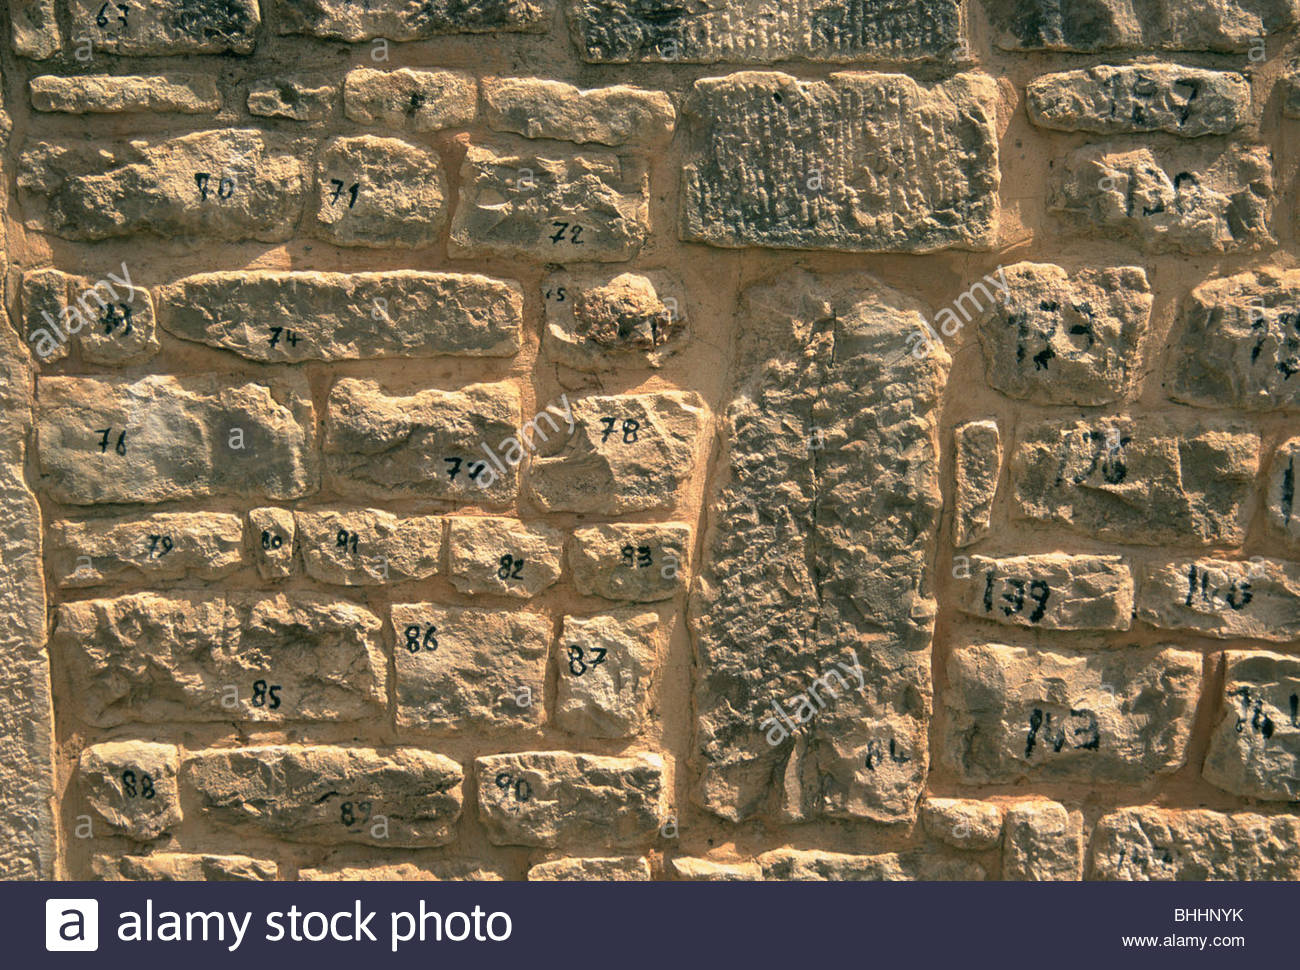 House reconstructed by numbers, Dougga, Tunisia. Artist: Dr Stephen Coyne - Stock Image